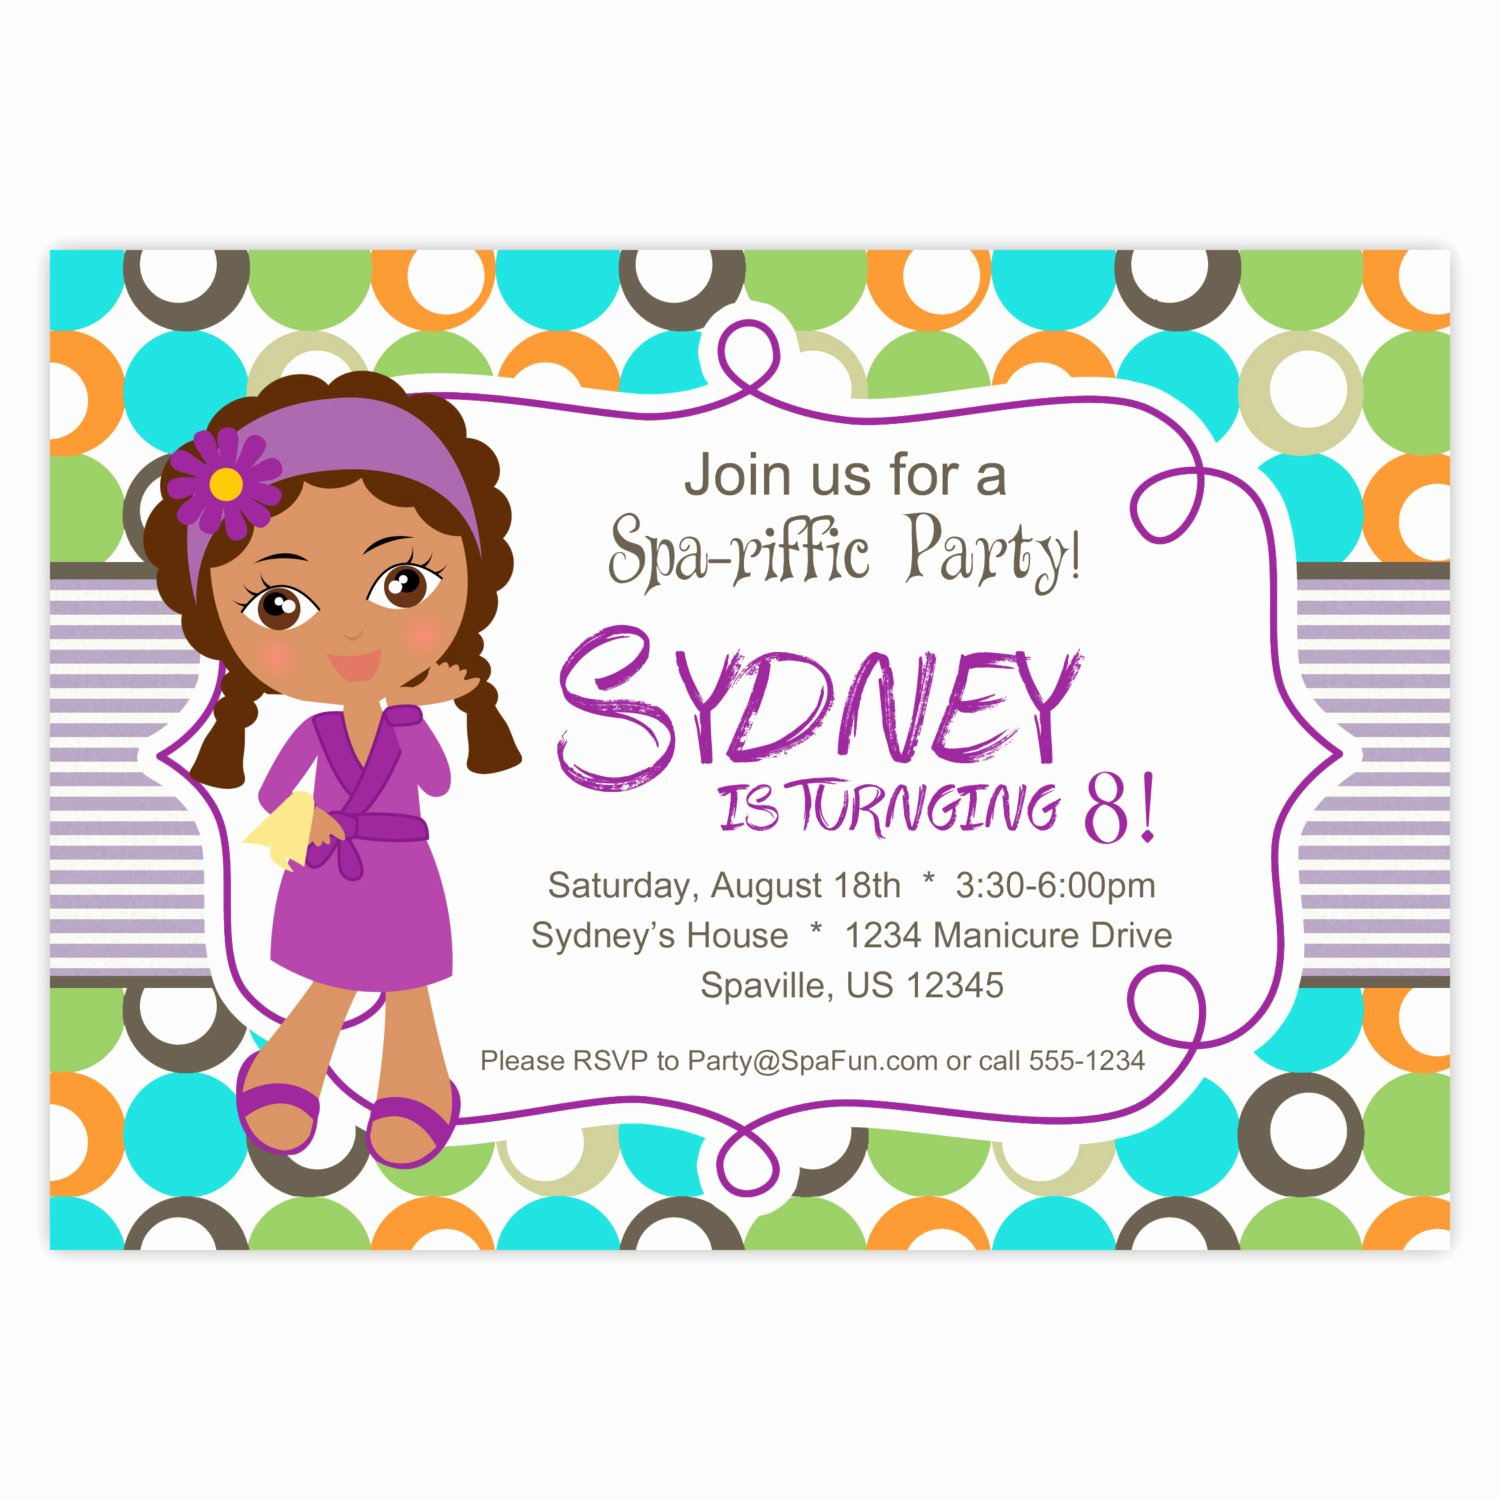 Free Spa Party Invitations Inspirational Spa Party Invitation Lime Turquoise and orange Polka Dots